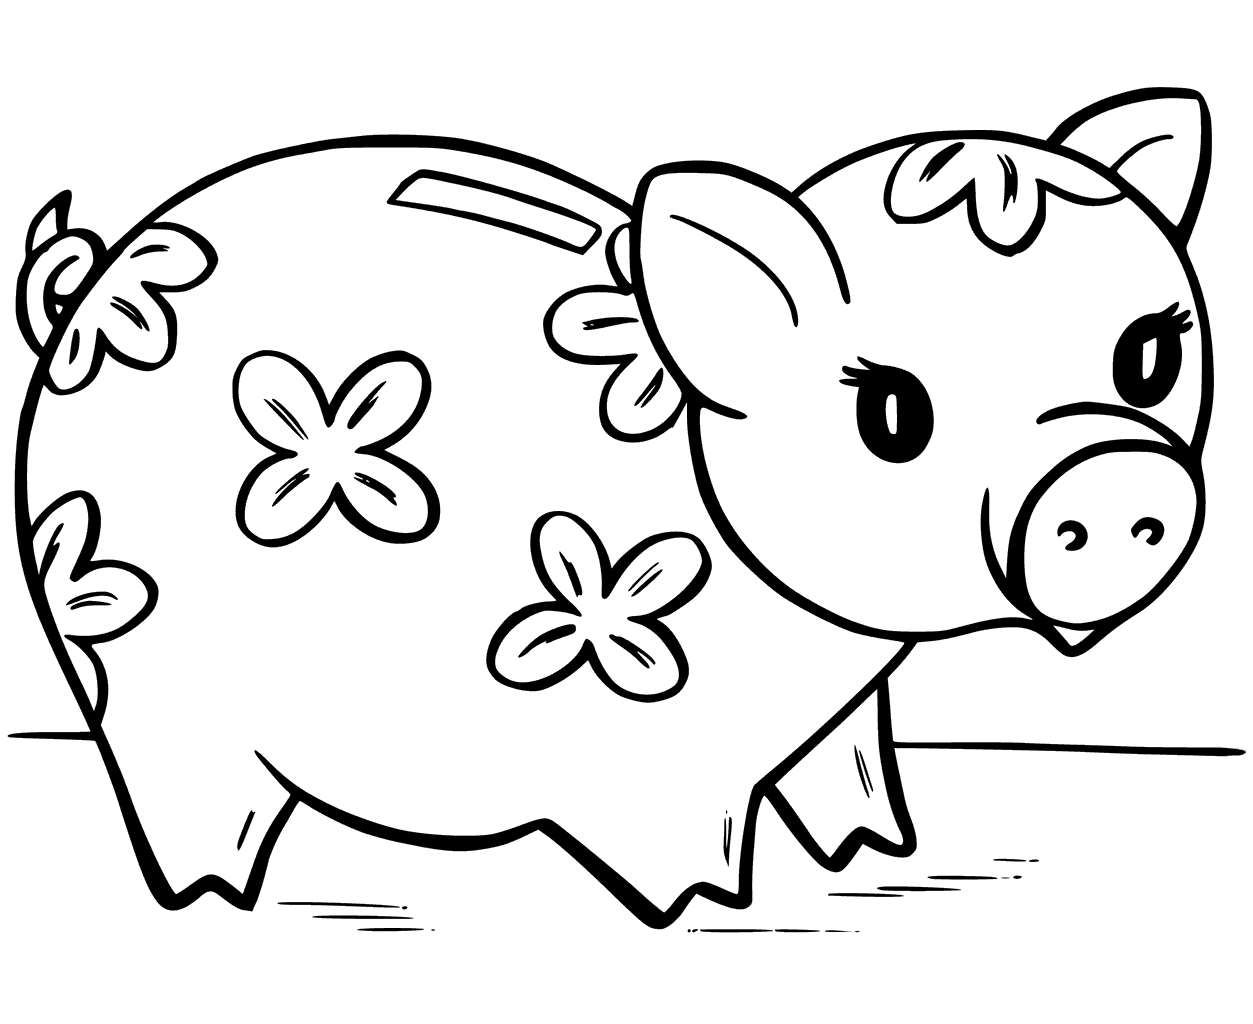 piggy bank coloring page 10 piggy bank coloring pages for your little ones bank page coloring piggy